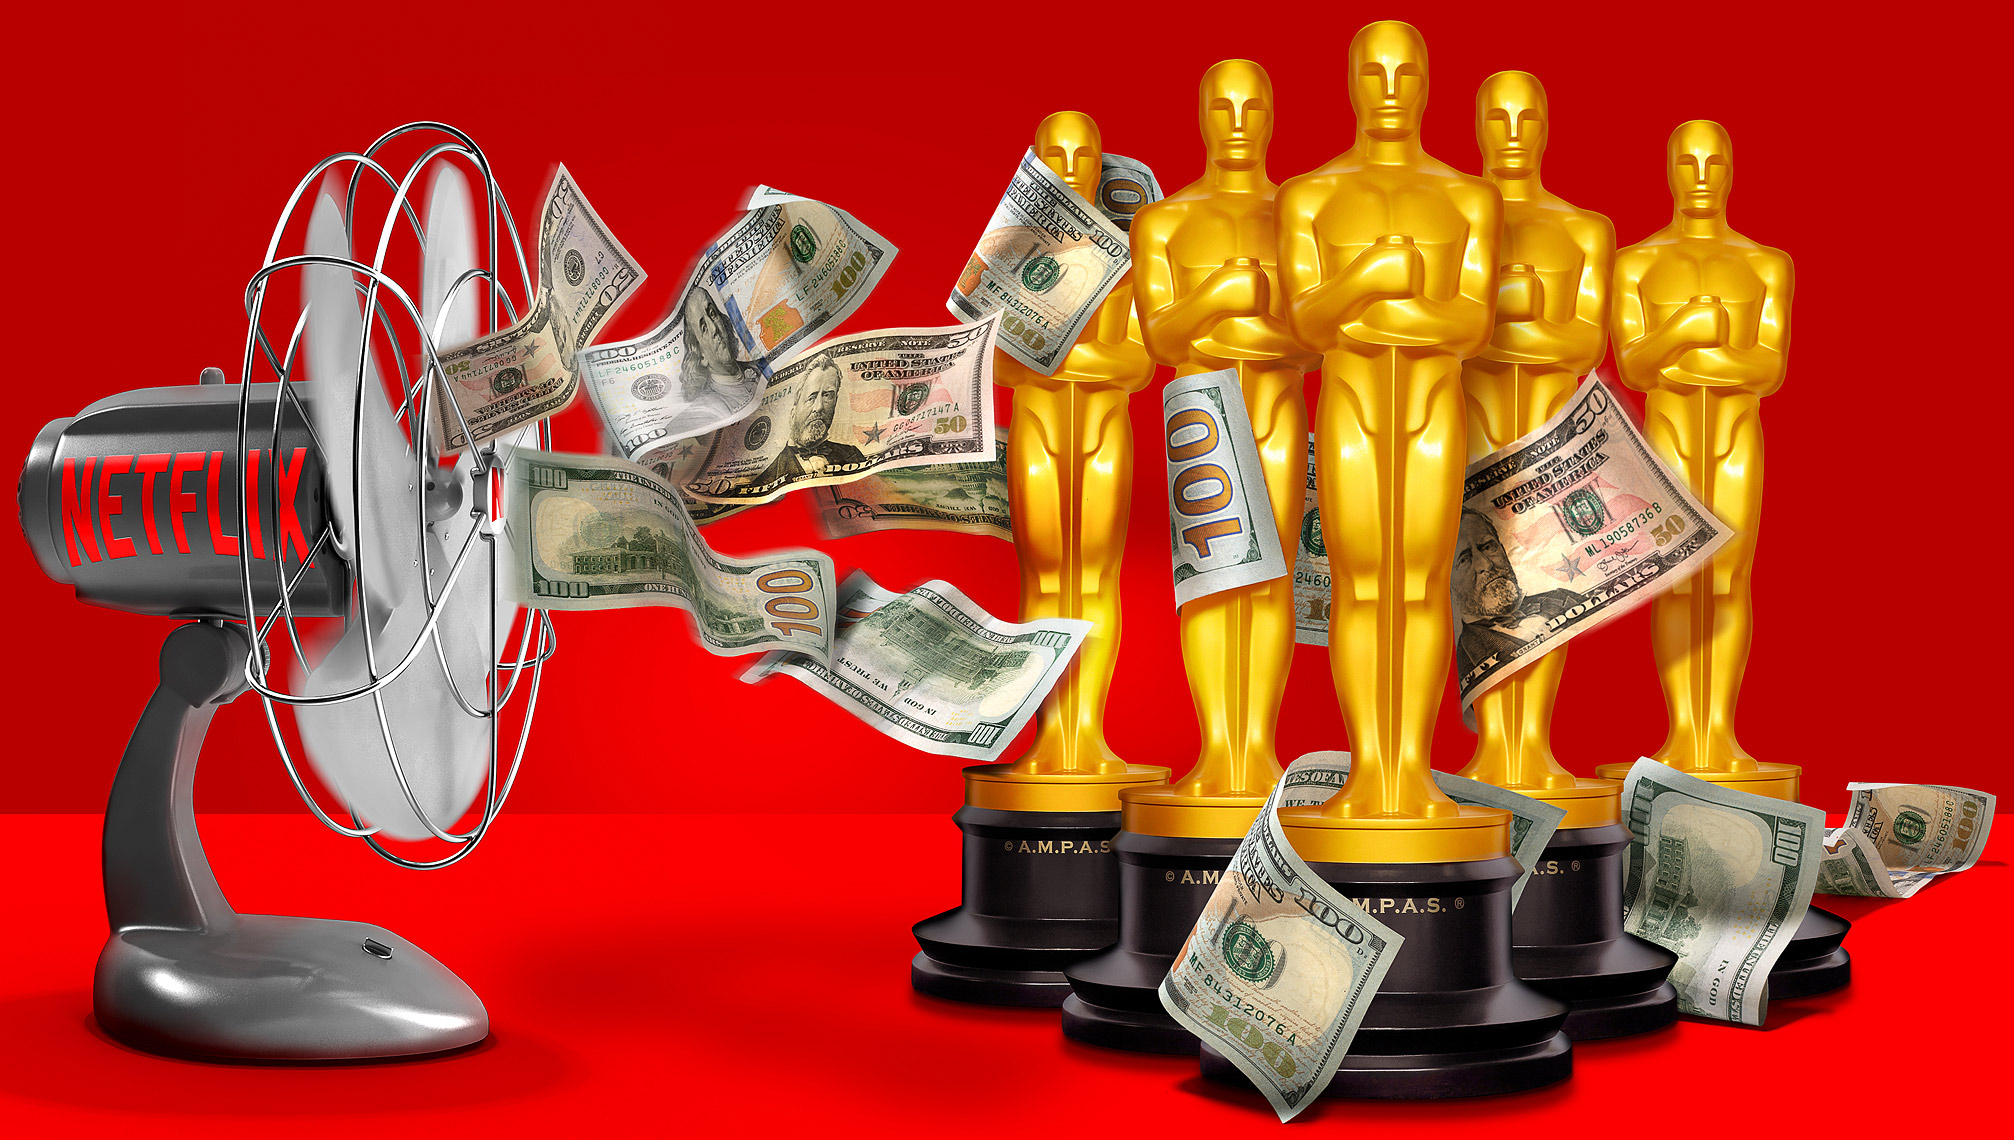 Netflix throws money at Oscar photo-illustration by John Kuczala